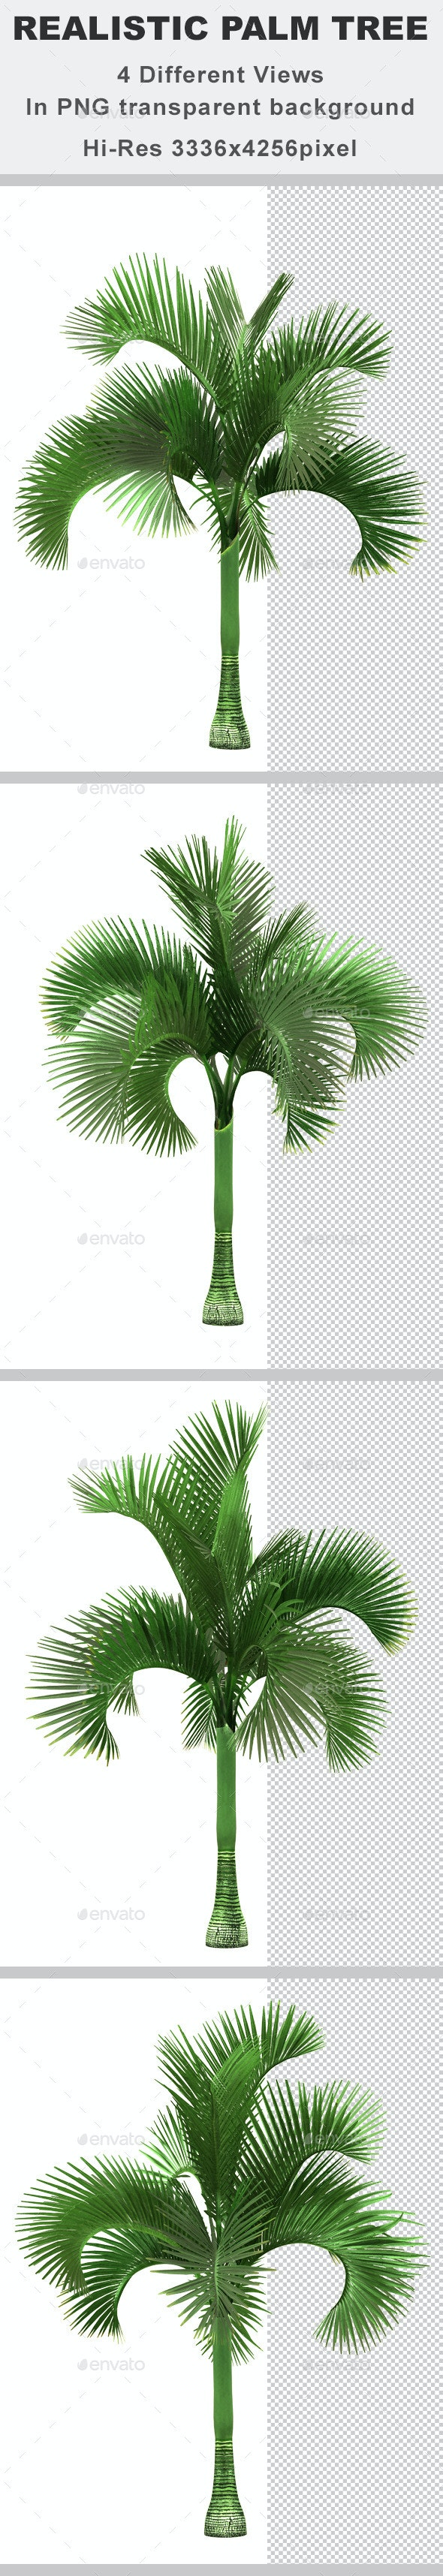 4 Realistic Palm Tree - 3D Renders Graphics